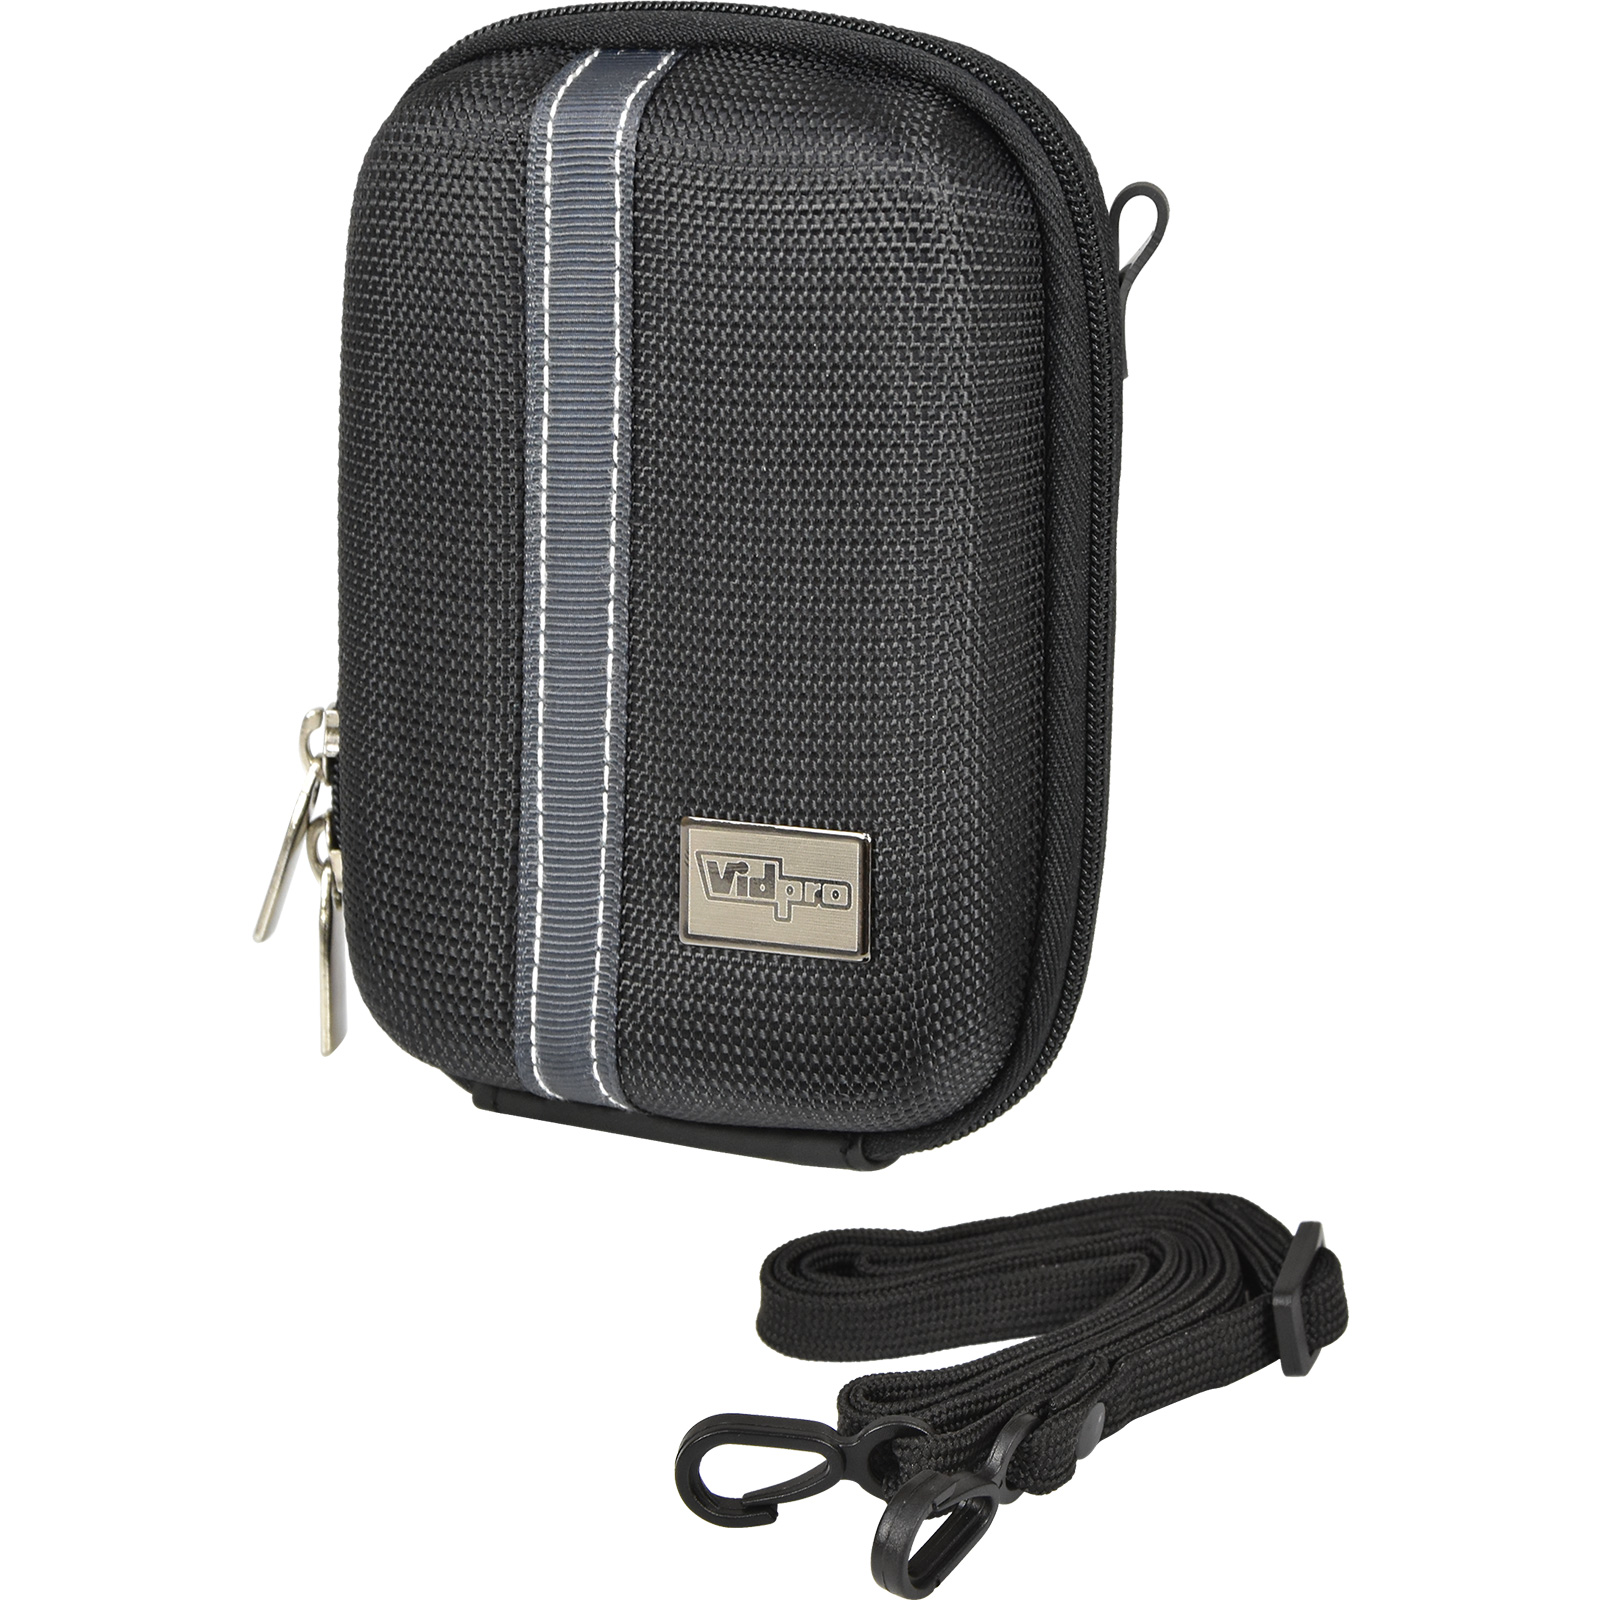 Vidpro ACT-15 Accent Hard Shell Digital Camera Case